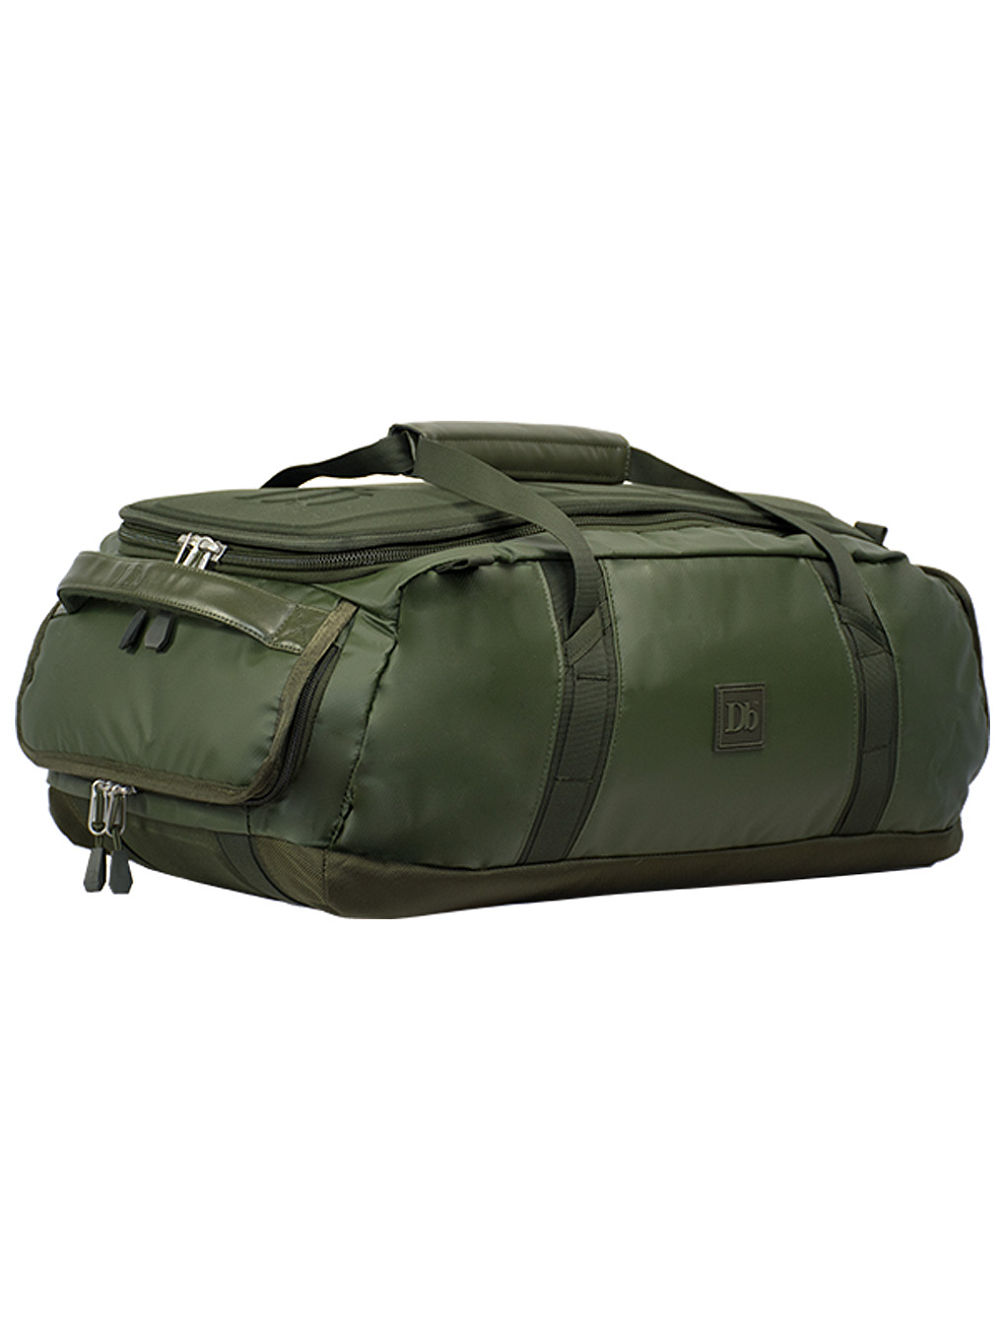 The Carryall 40L Travel Bag